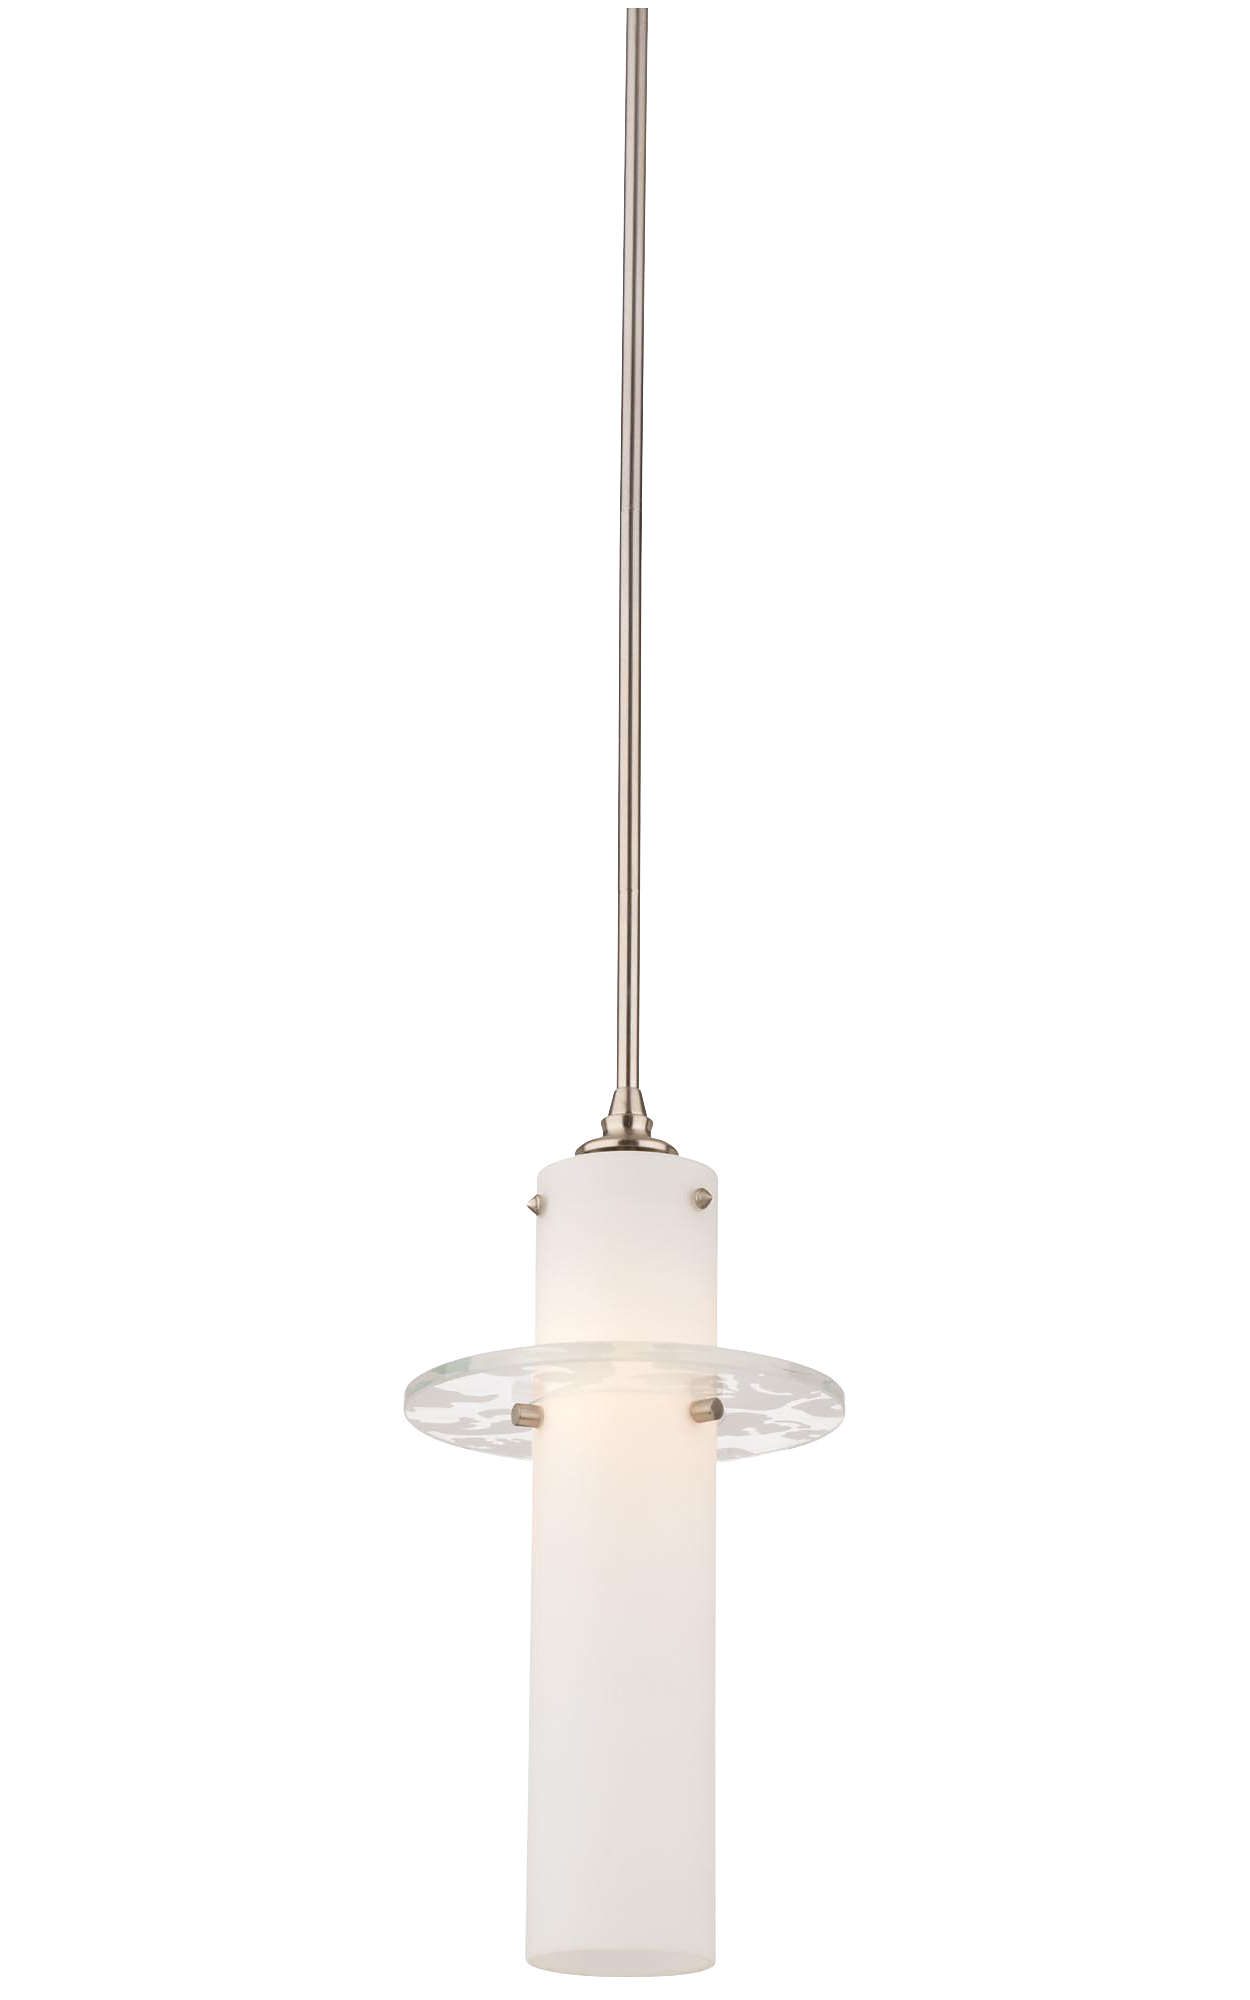 Dana 1-light Pendant in Satin Nickel finish